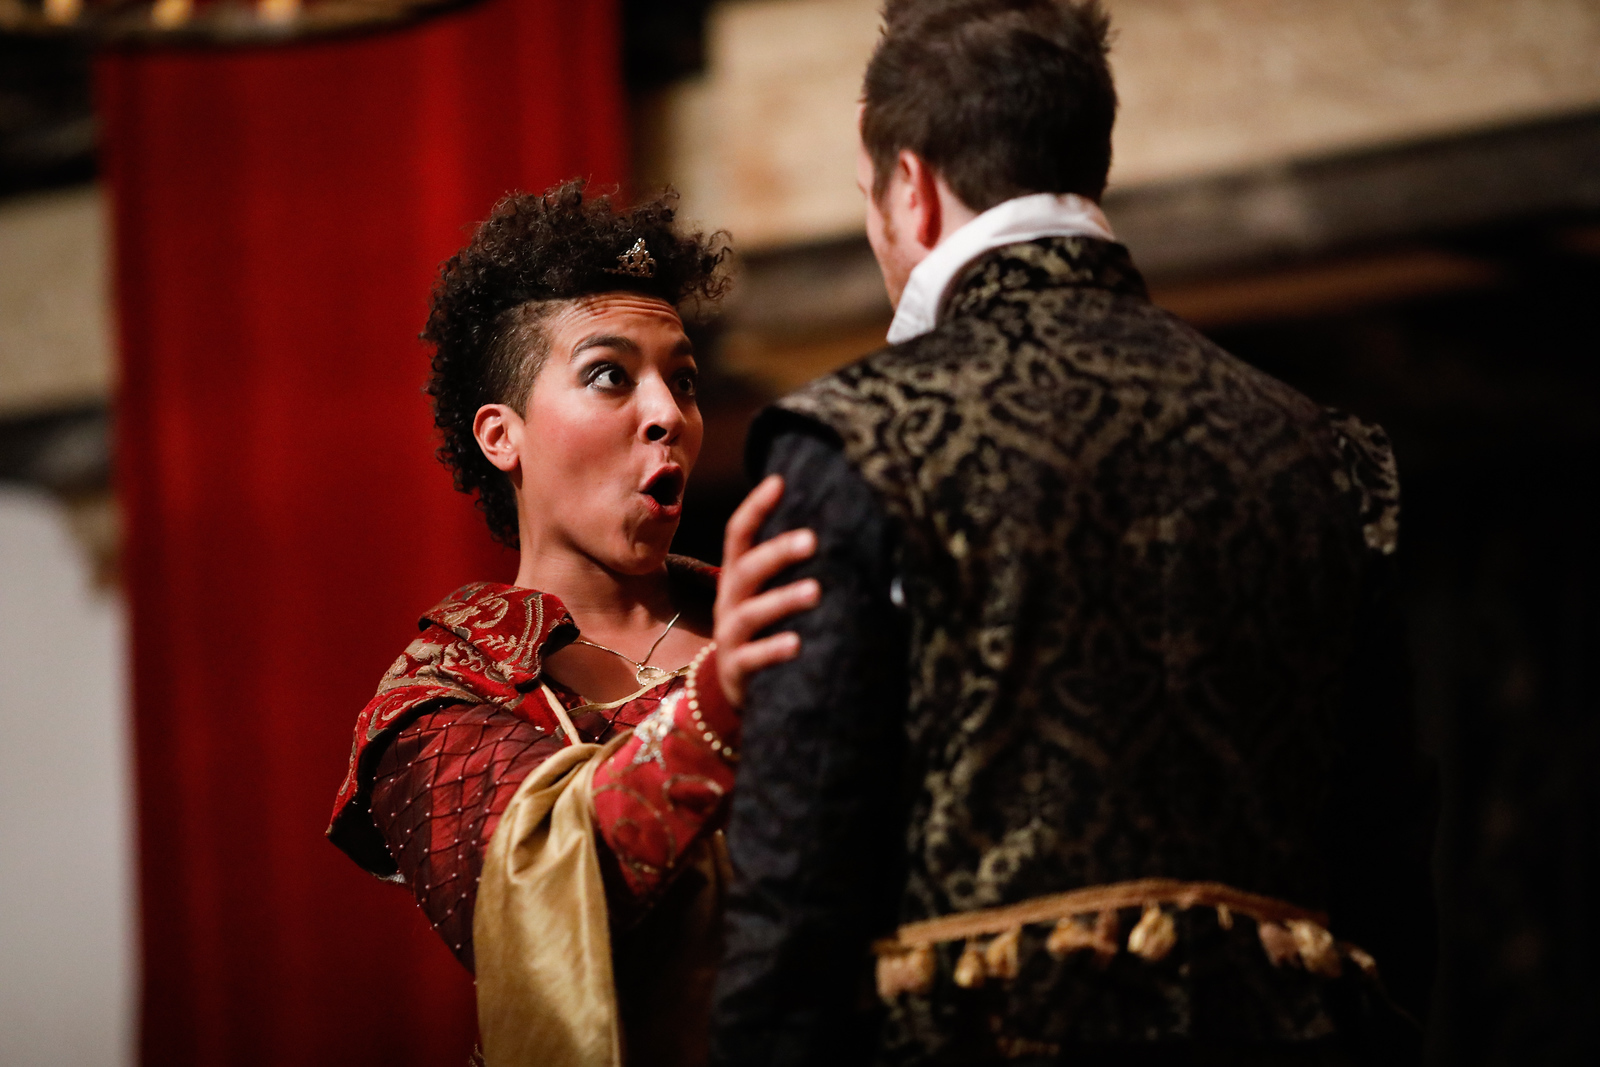 Jessika Williams as Gertrude and Chris Johnston as Rosencrantz in ROSENCRANTZ AND GUILDENSTERN ARE DEAD.  Photo by Lindsey Walters.